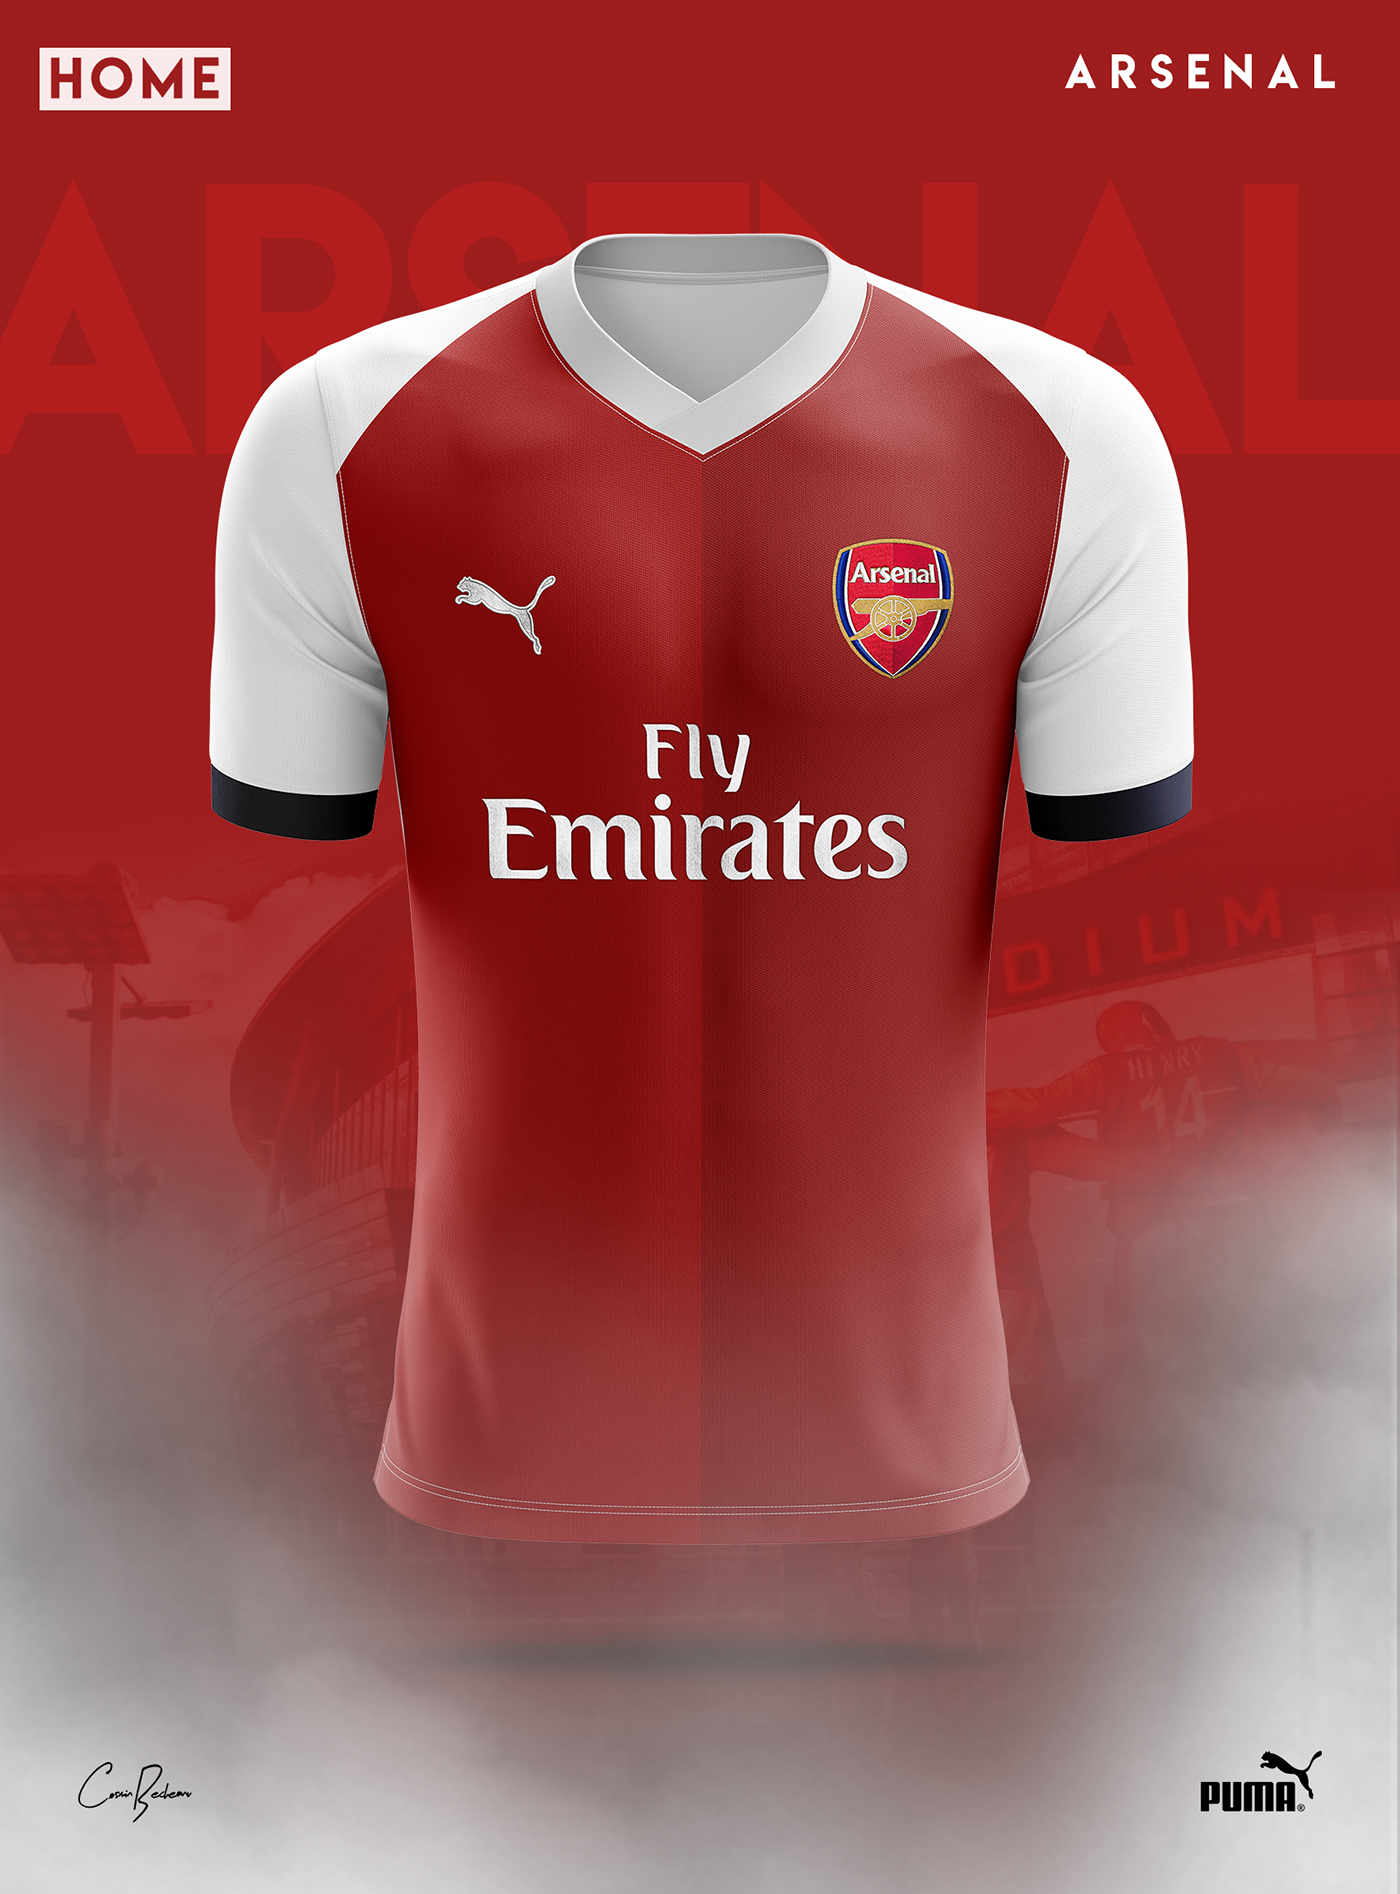 0bd97faba Arsenal FC - PUMA - Concept 2019 on Behance